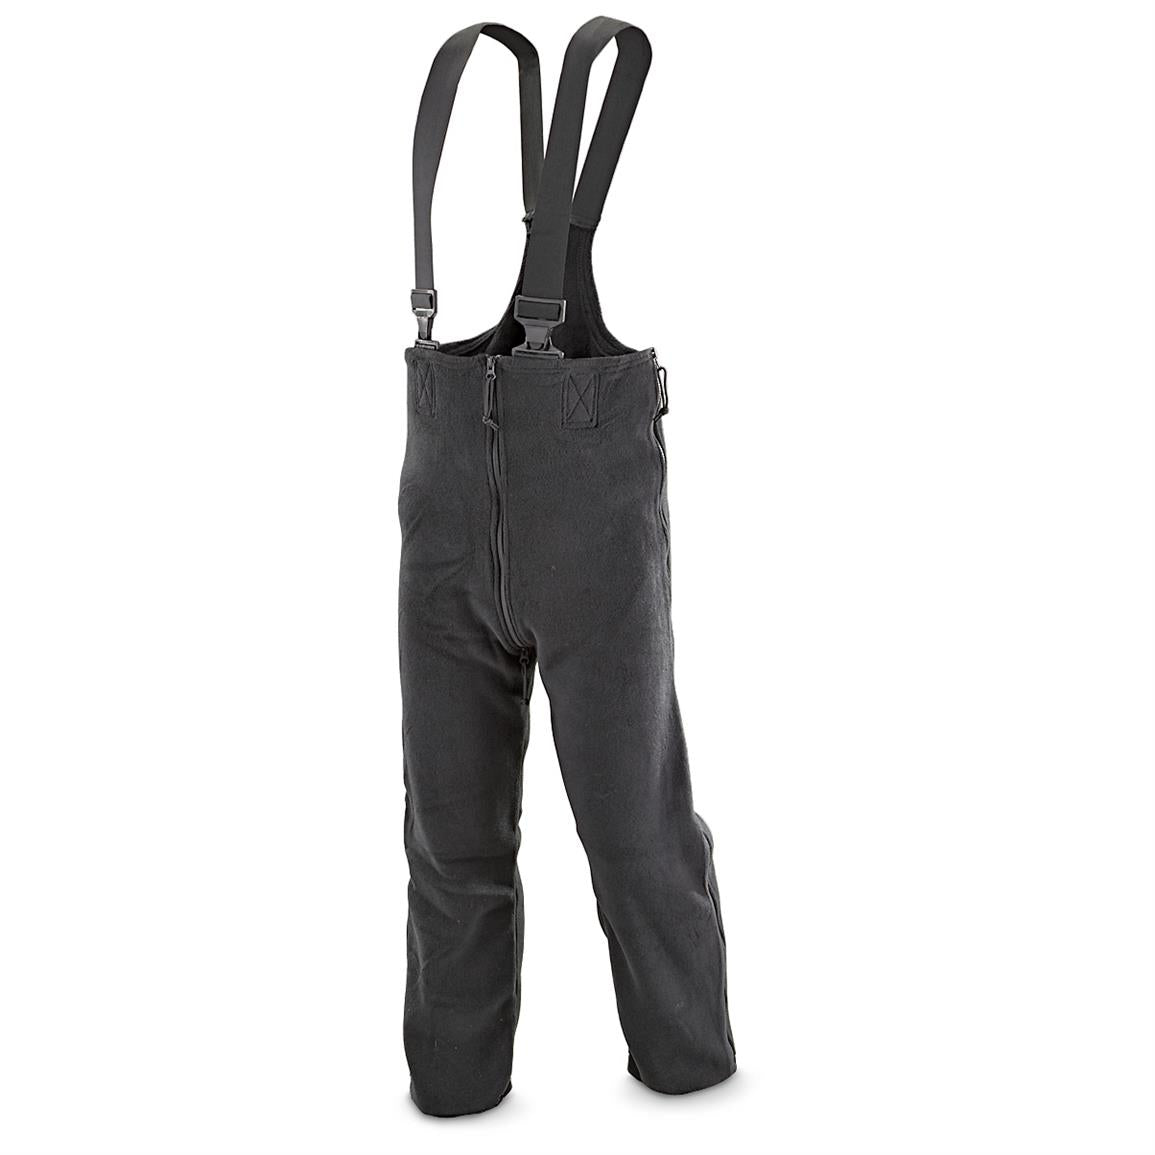 U.S Extreme Cold Military Issue Government Contractor Polartec 200 Fleece Overalls Black